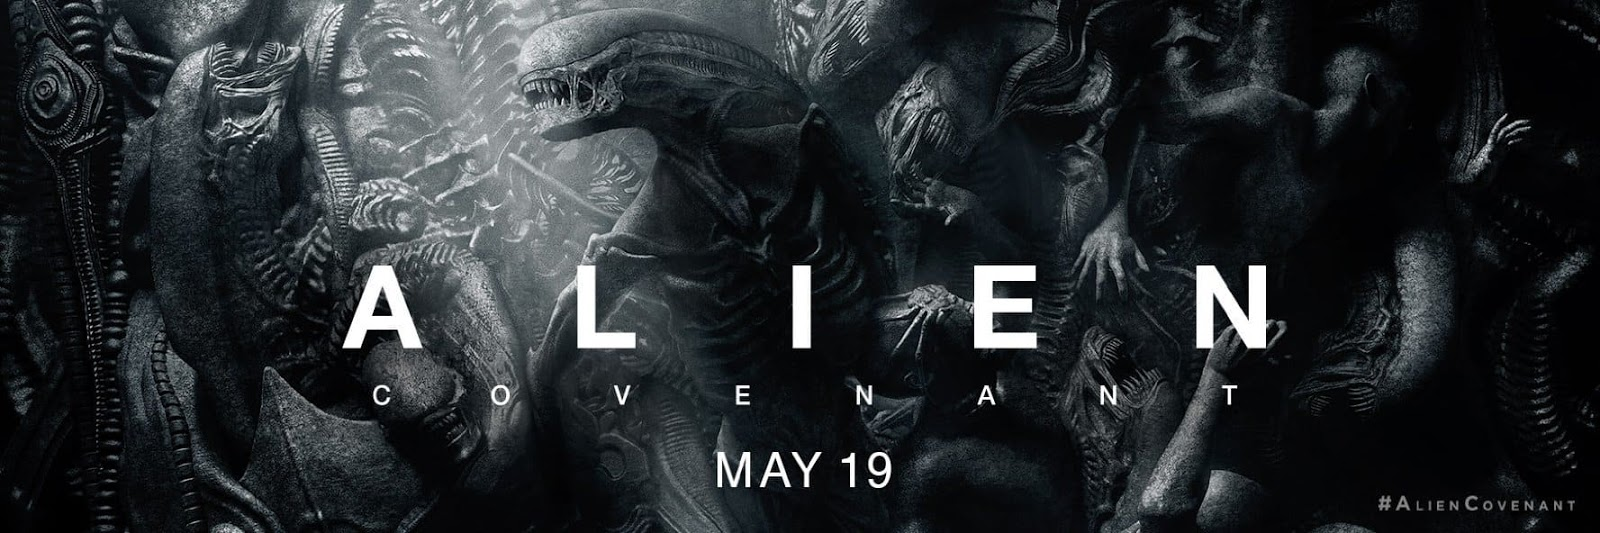 Alien Covenant - 4K Ultra HD Torrent 2017 4K BDRip Bluray UltraHD